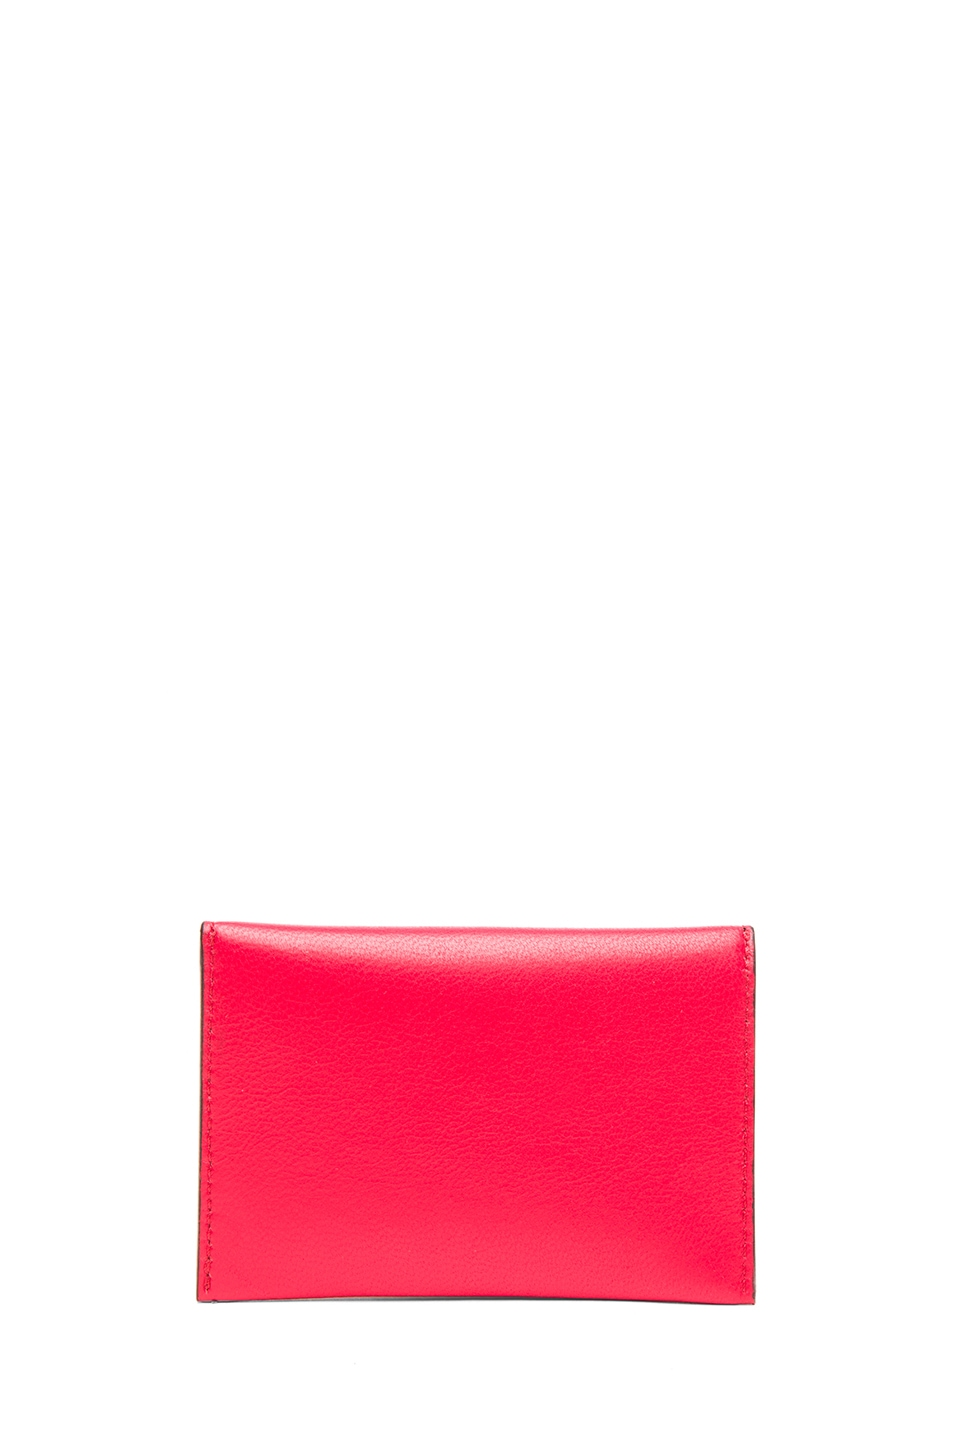 Image 2 of Alexander McQueen Envelope Card Holder in Shiny Red